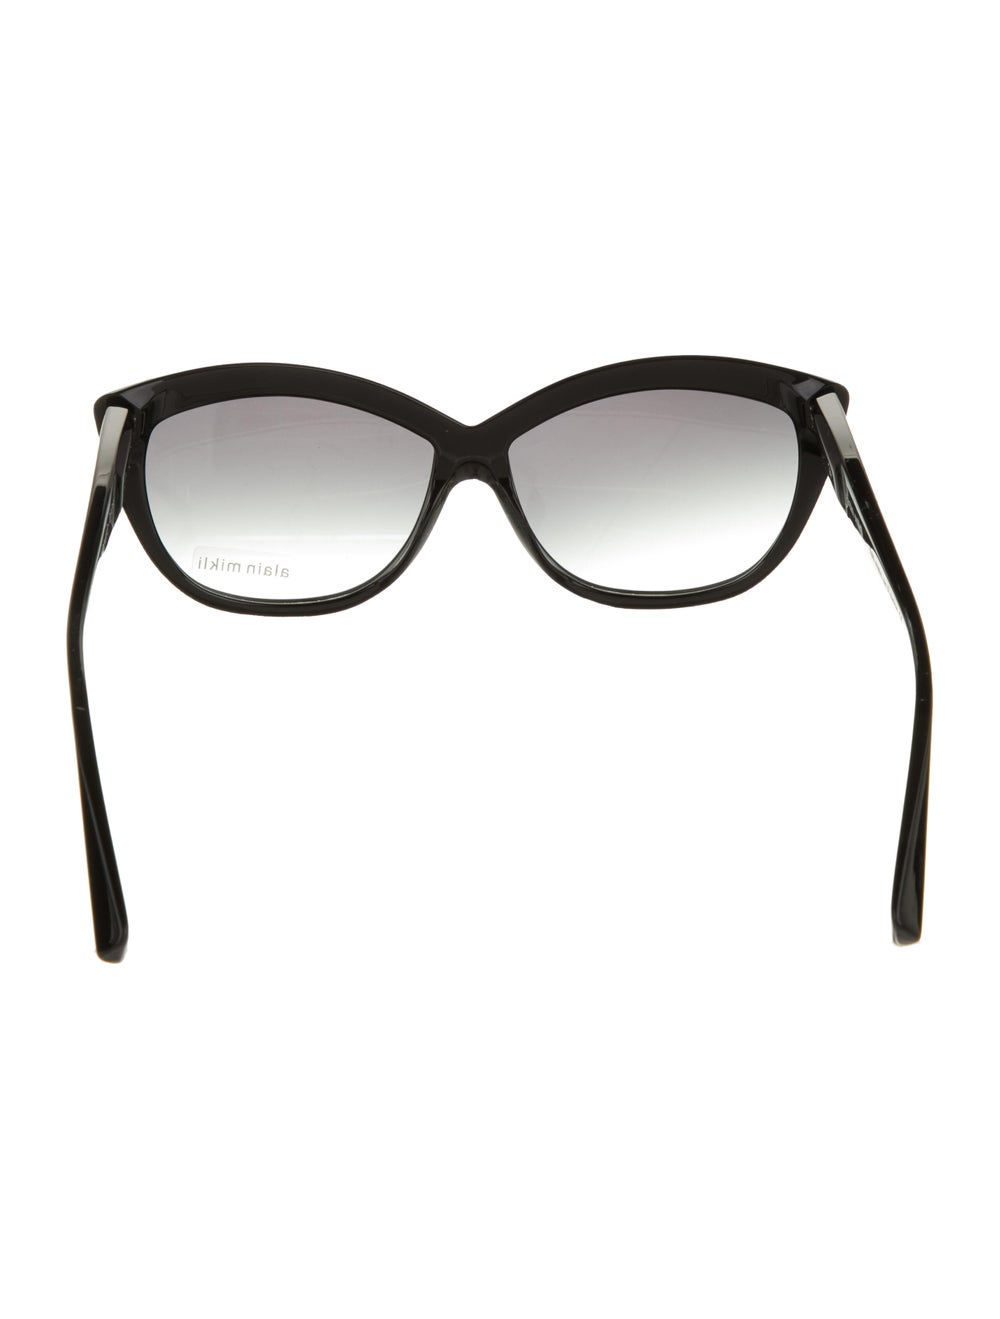 Alain Mikli Cat-Eye Tinted Sunglasses Black - image 3